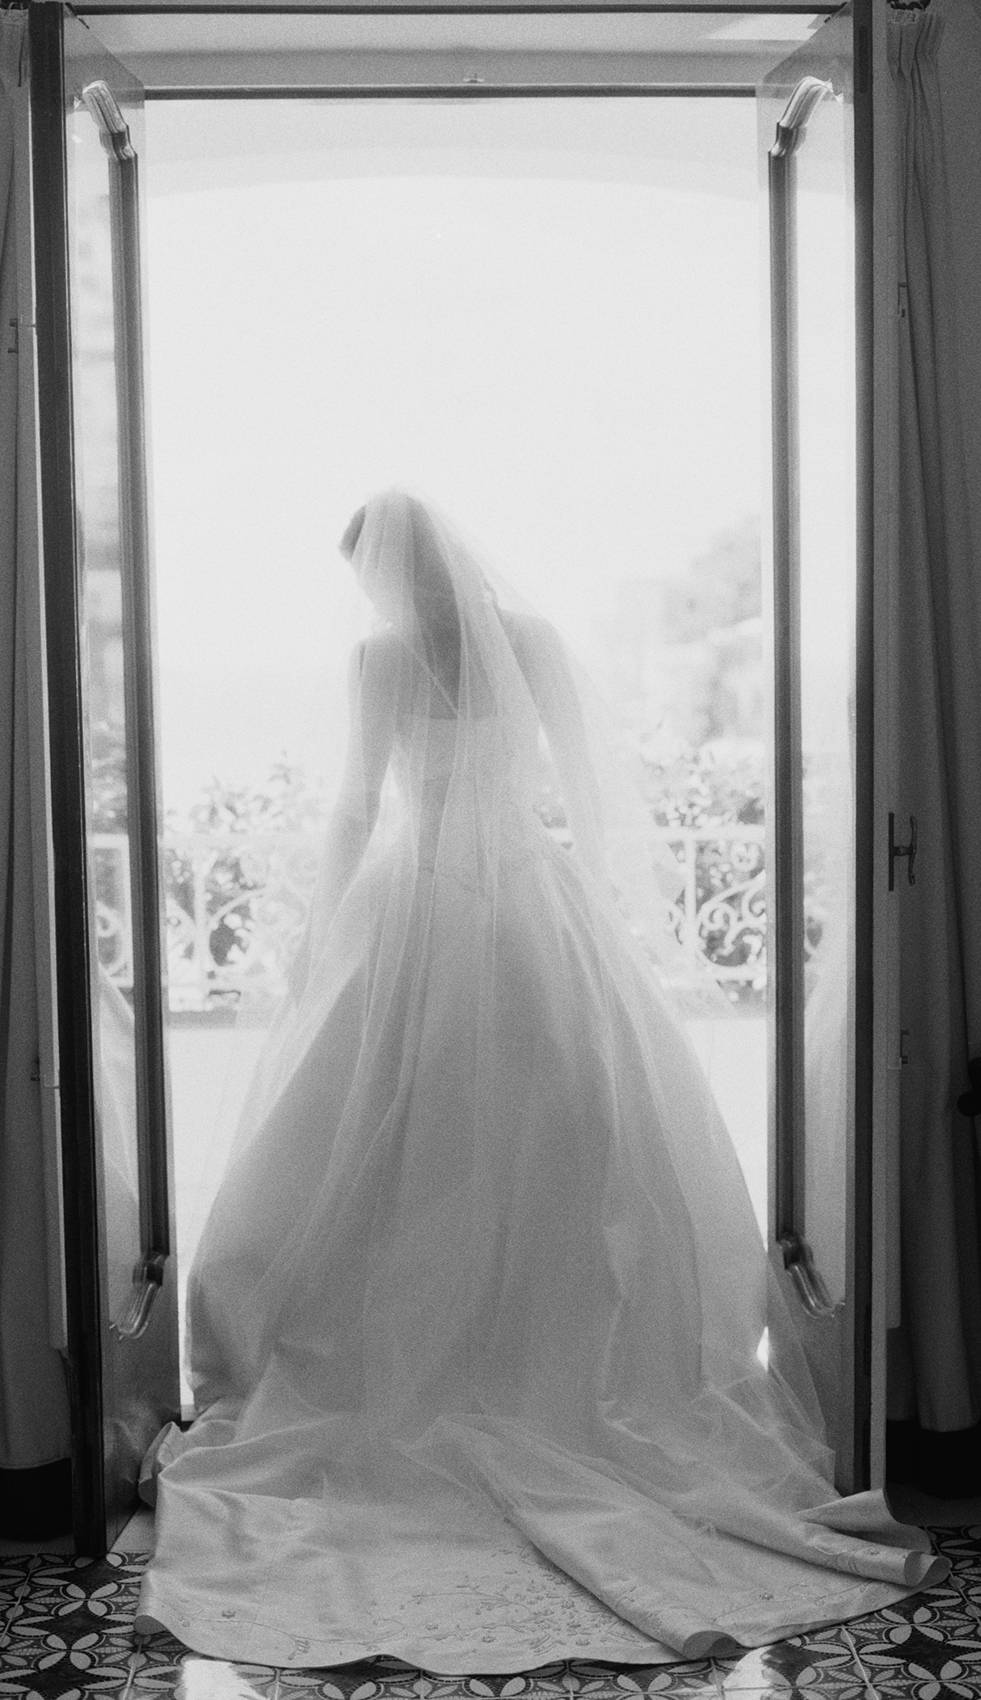 Bride wearing wedding gown and standing in doorway